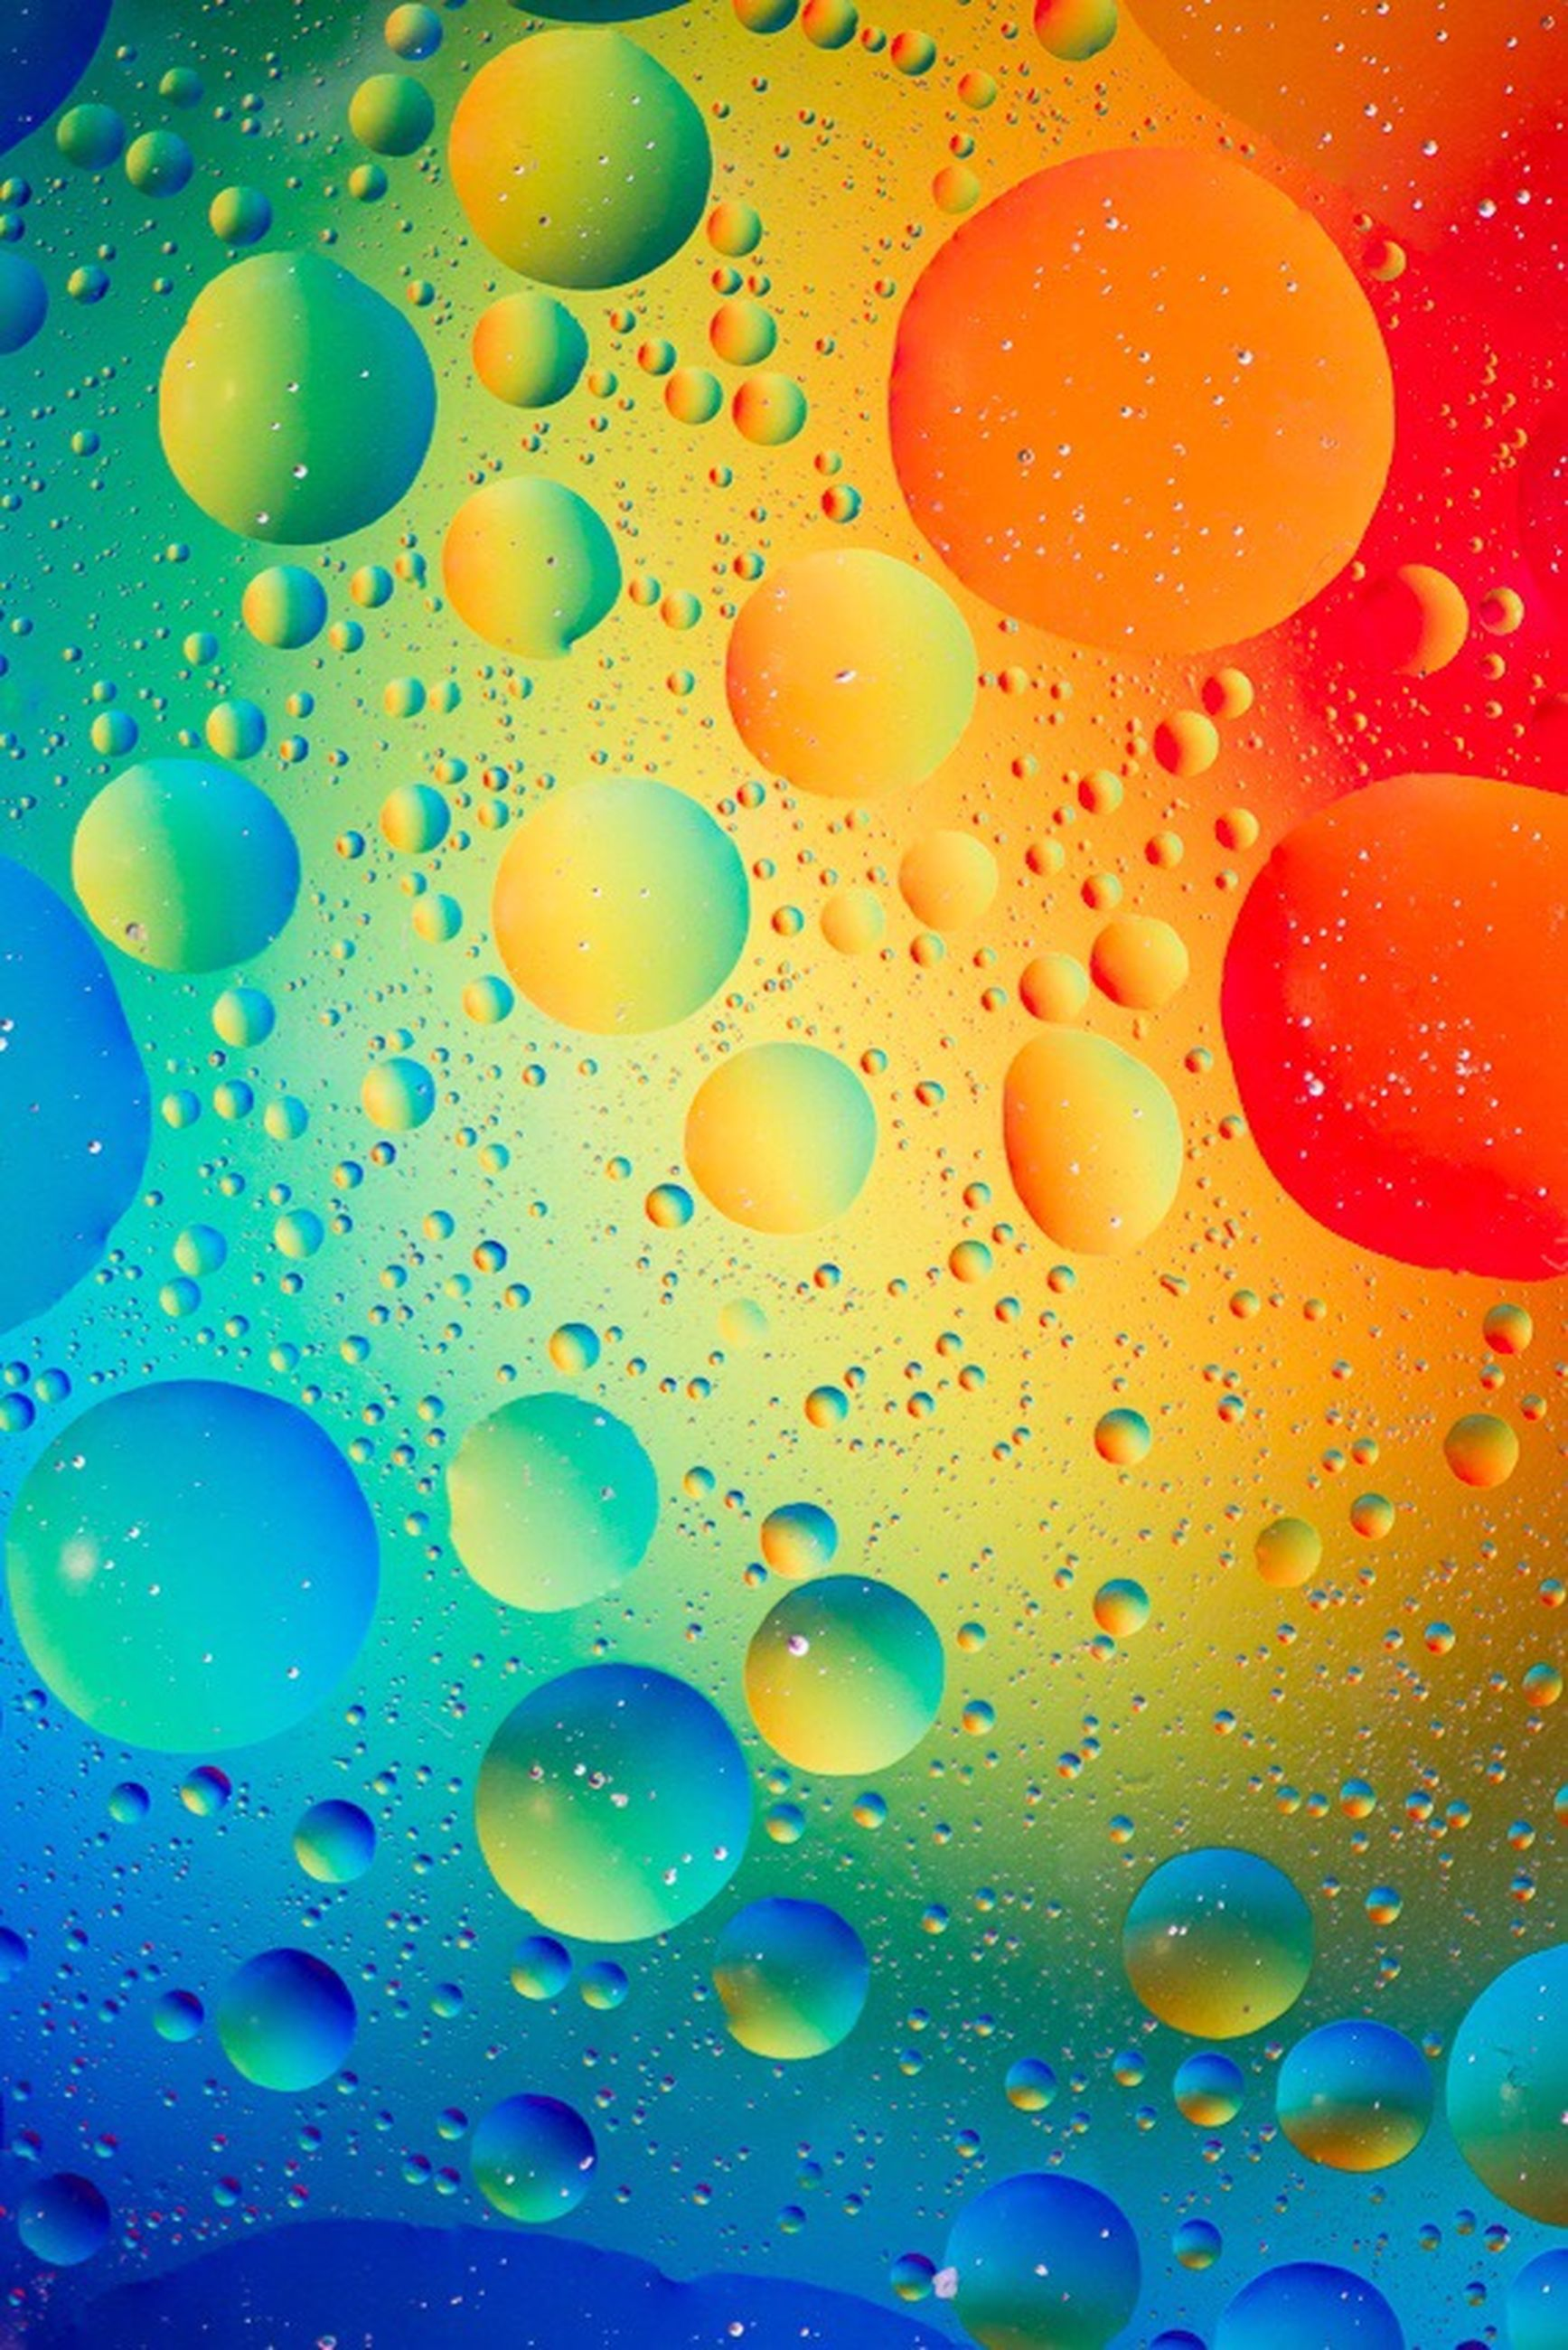 full frame, backgrounds, water, bubble, multi colored, drop, blue, indoors, transparent, close-up, freshness, pattern, wet, circle, abundance, colorful, no people, abstract, large group of objects, glass - material